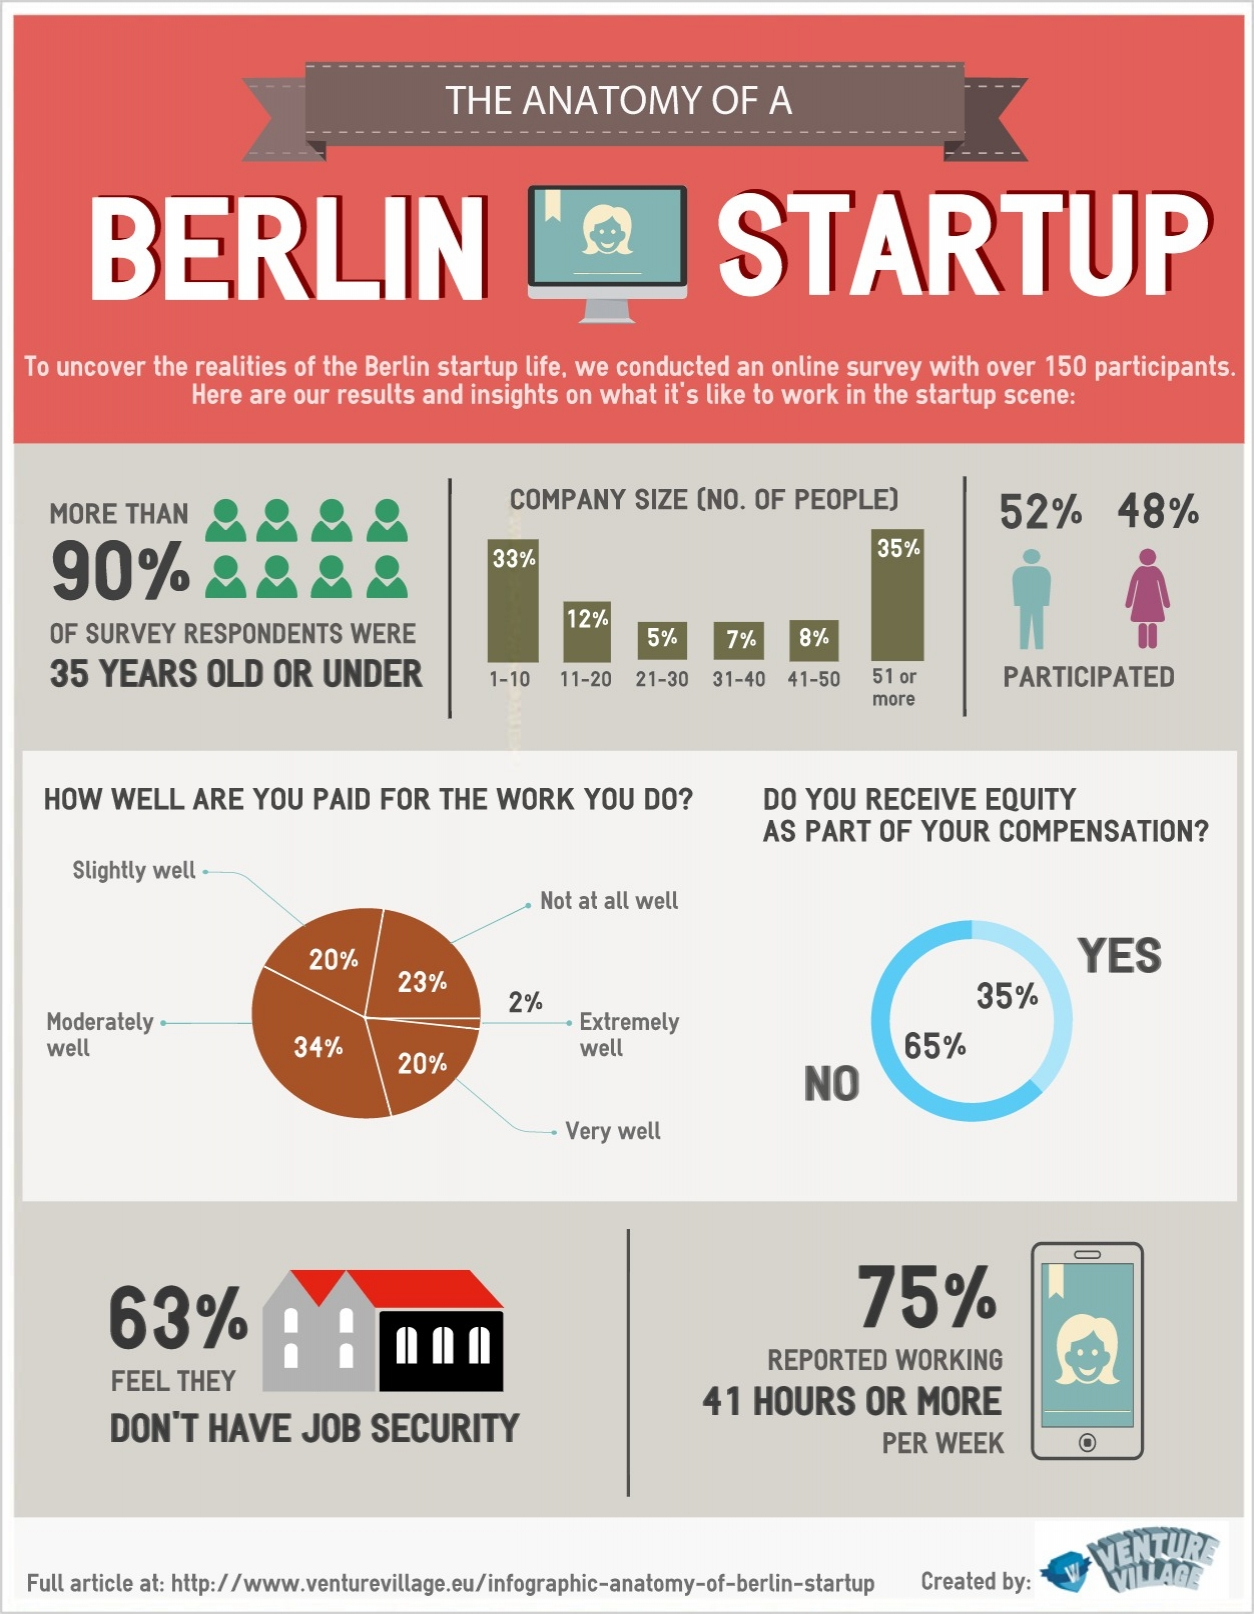 The Anatomy of a Berlin Startup